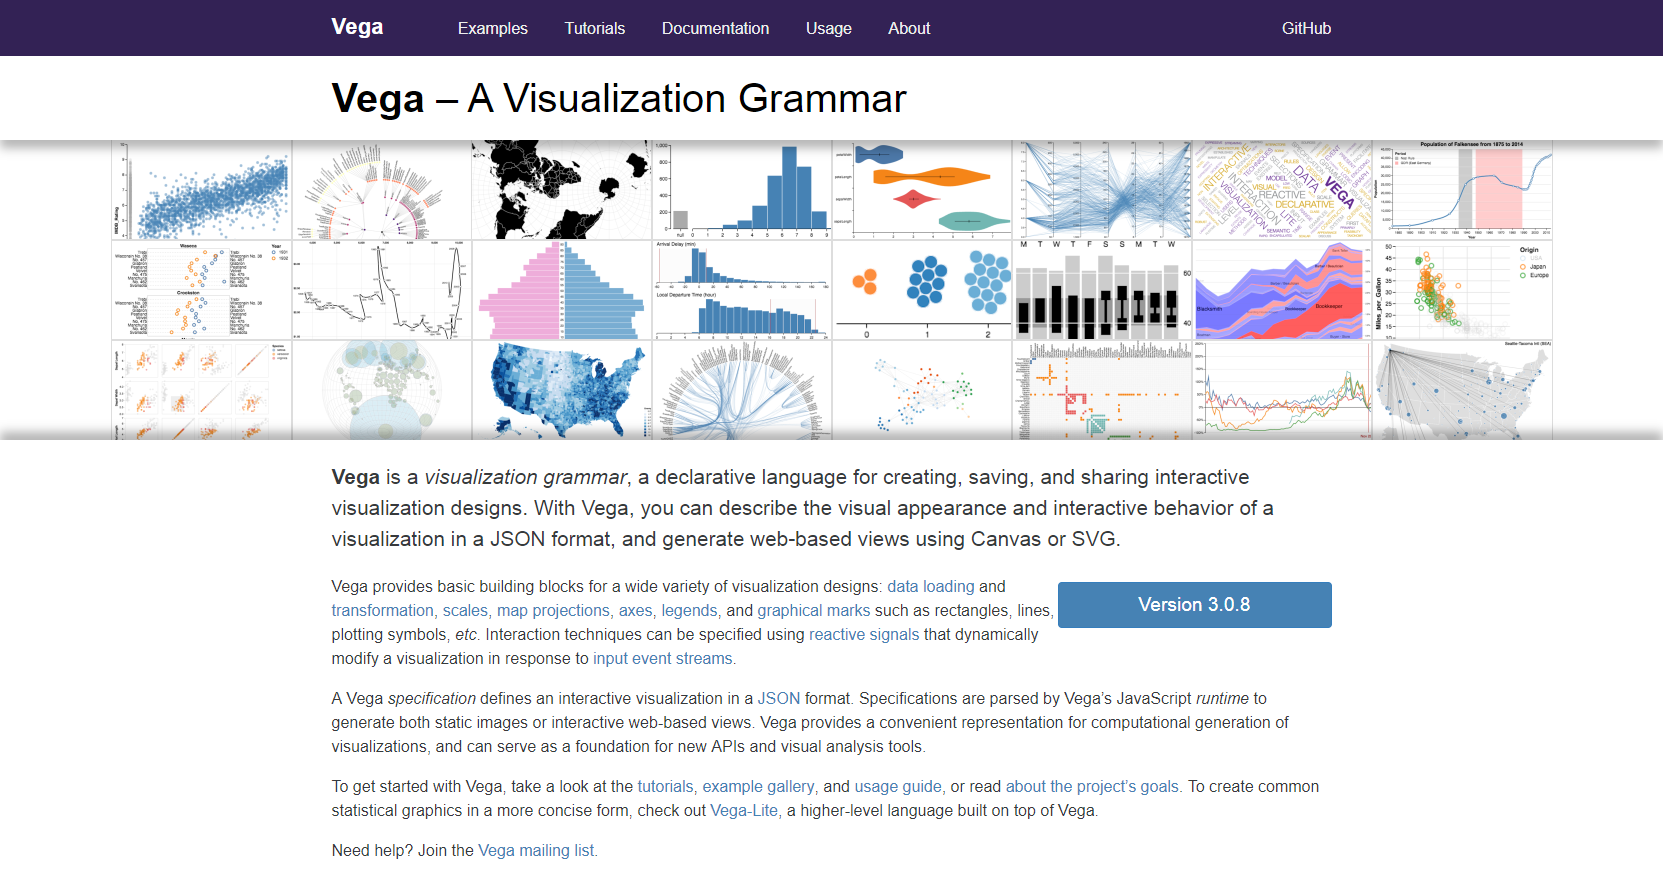 A Visualization Grammar   Vega.png